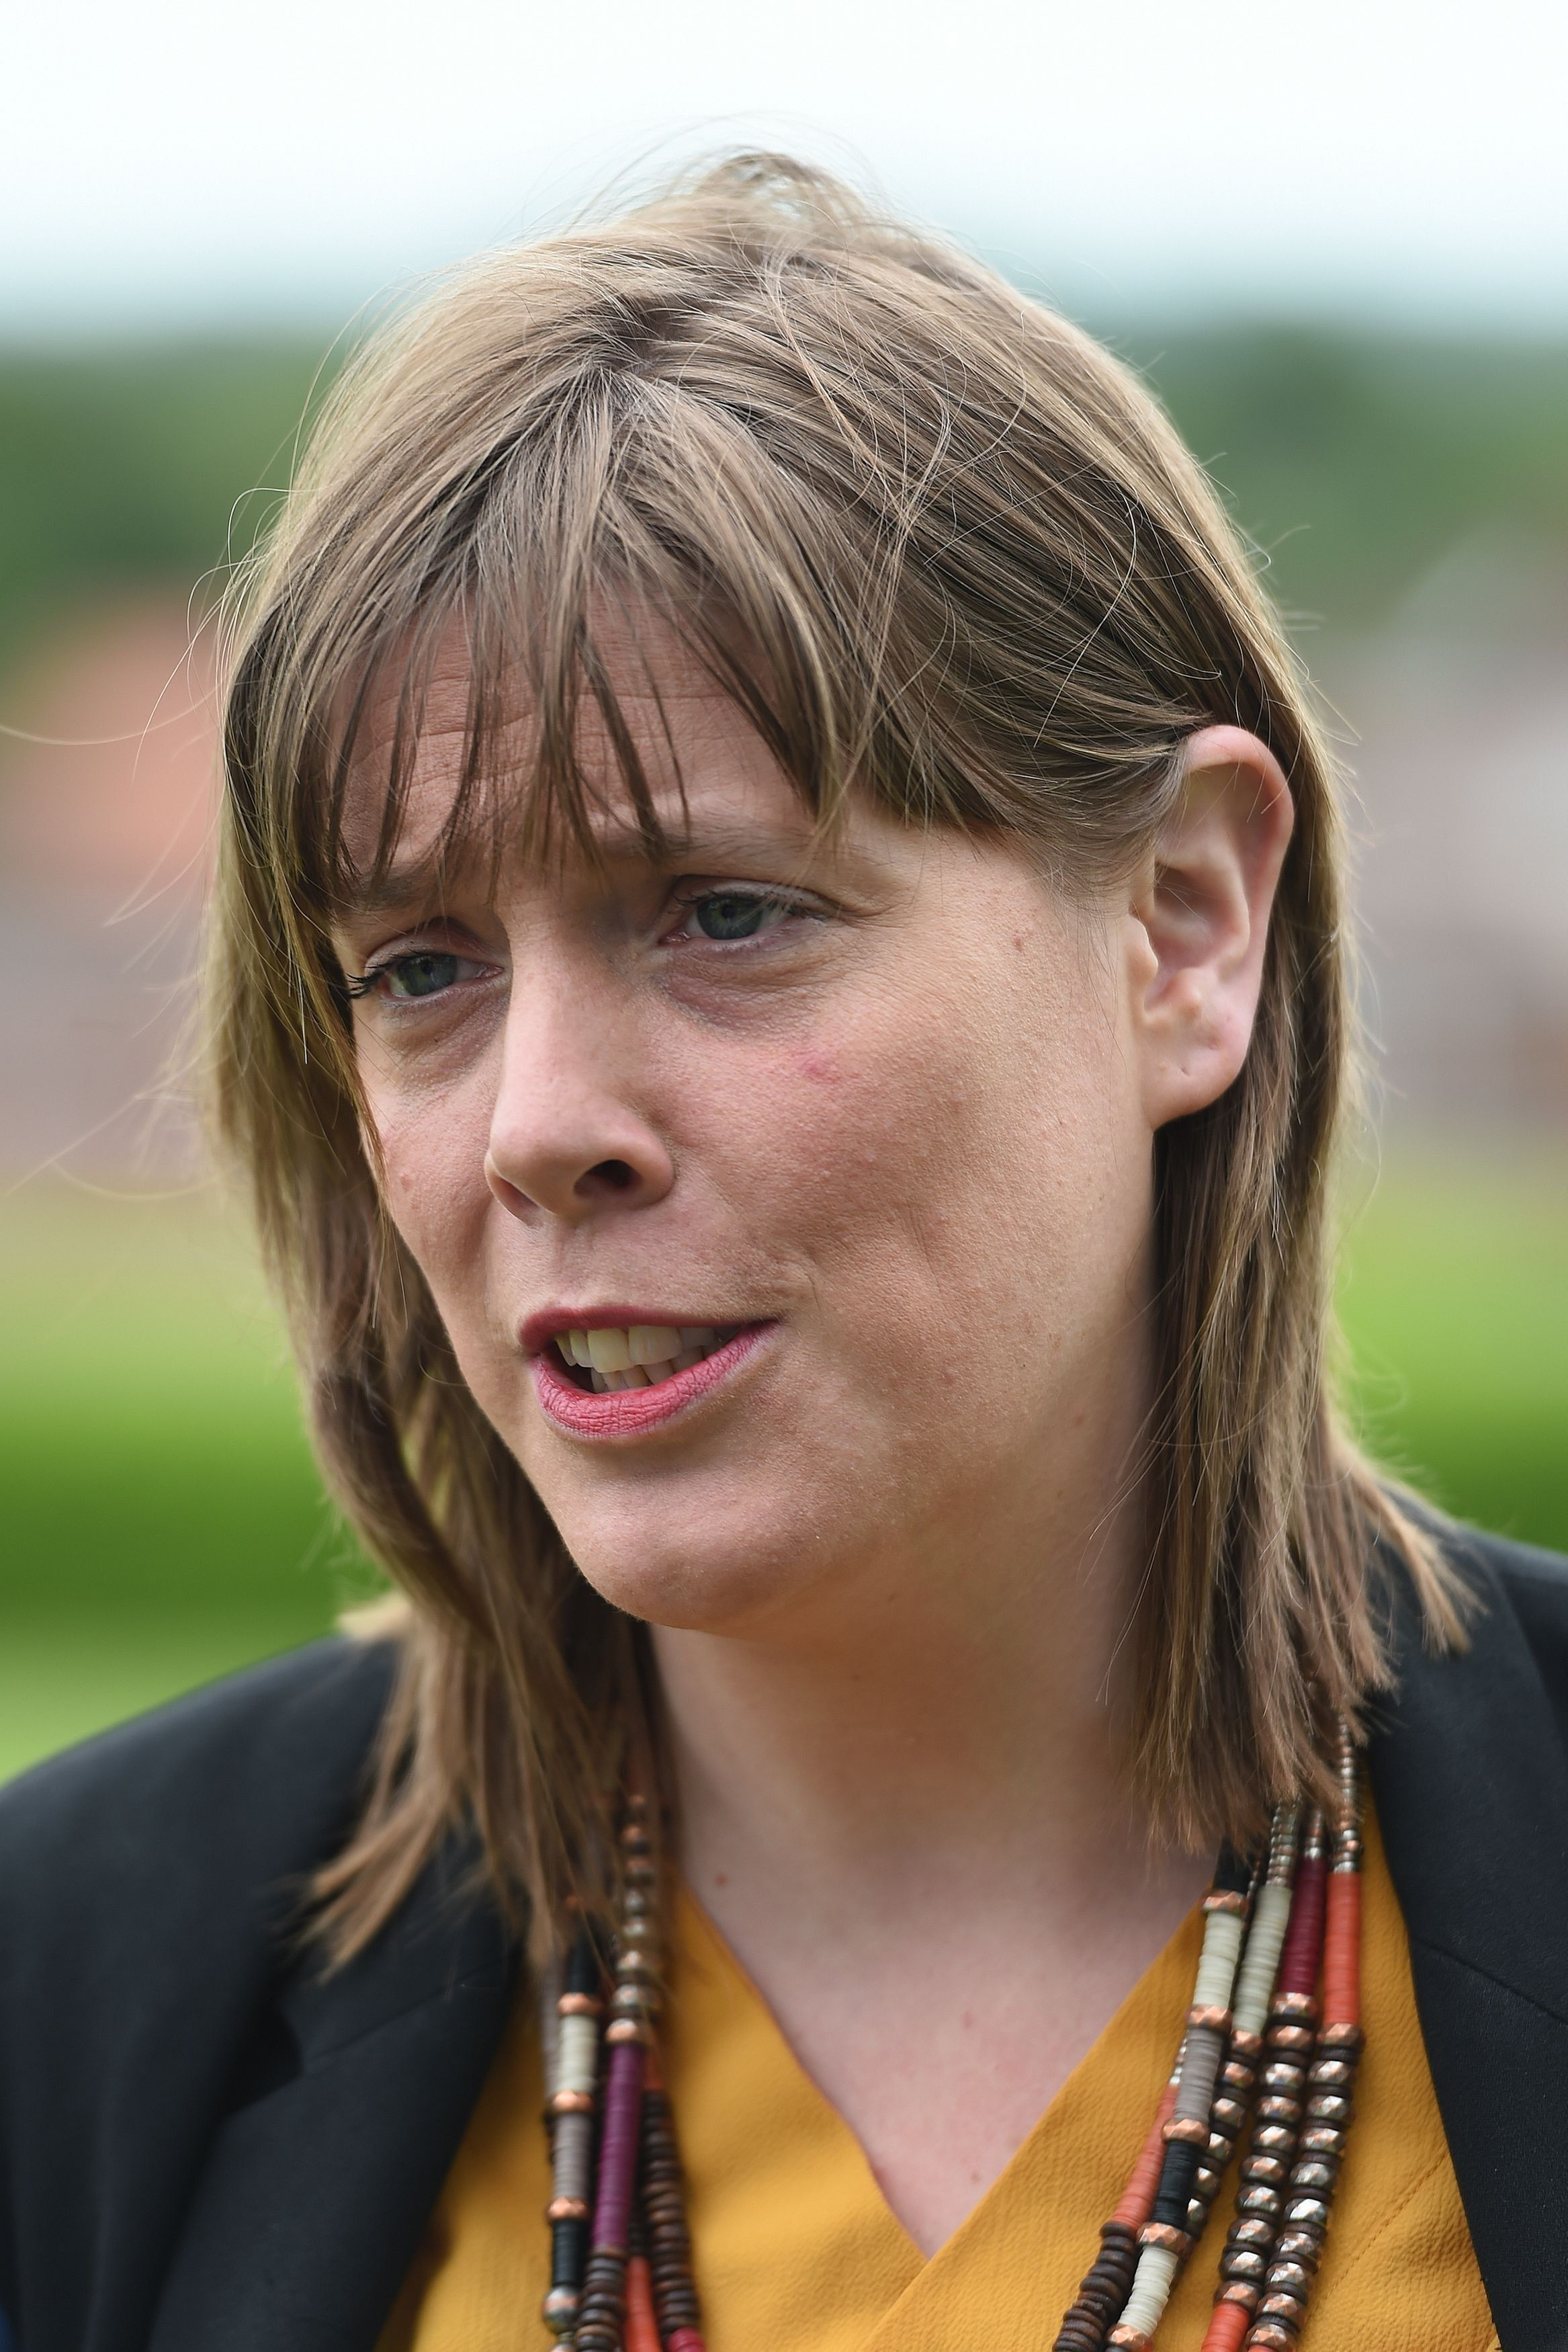 Labour's Jess Phillips Makes Emotional Plea To Government Over Domestic Violence